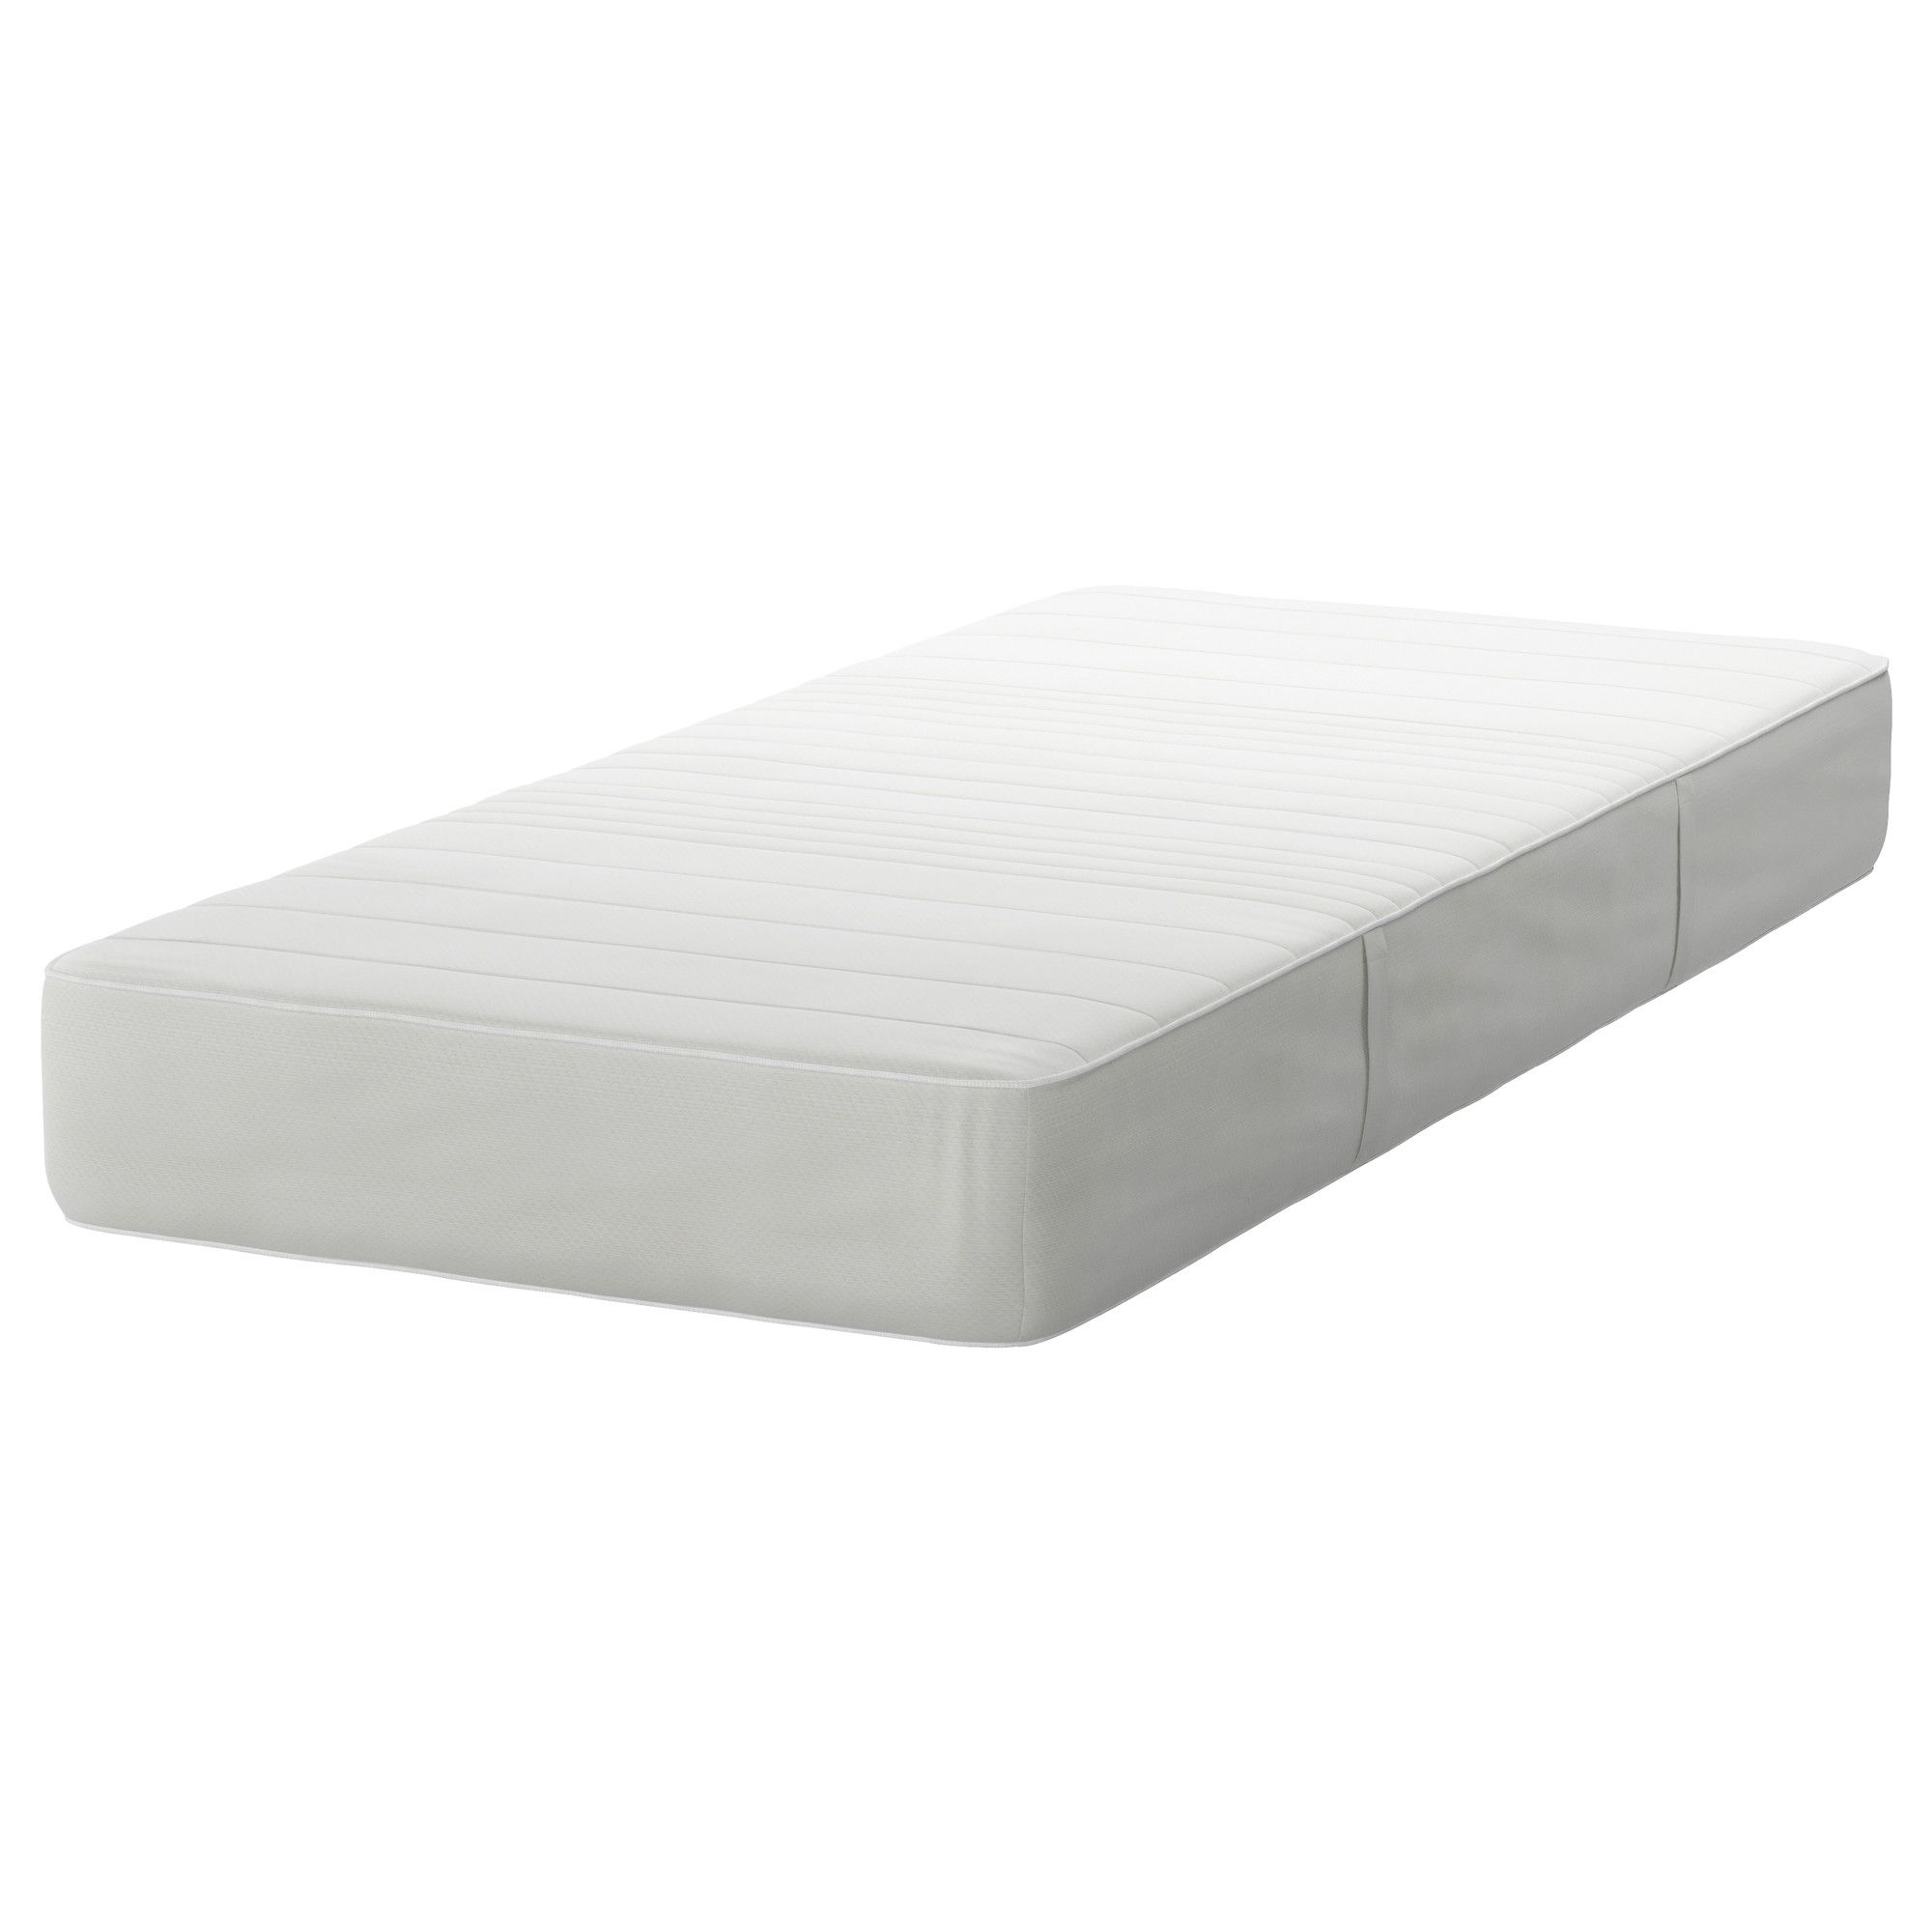 sultan fjordgard latex and foam mattress queen ikea for my